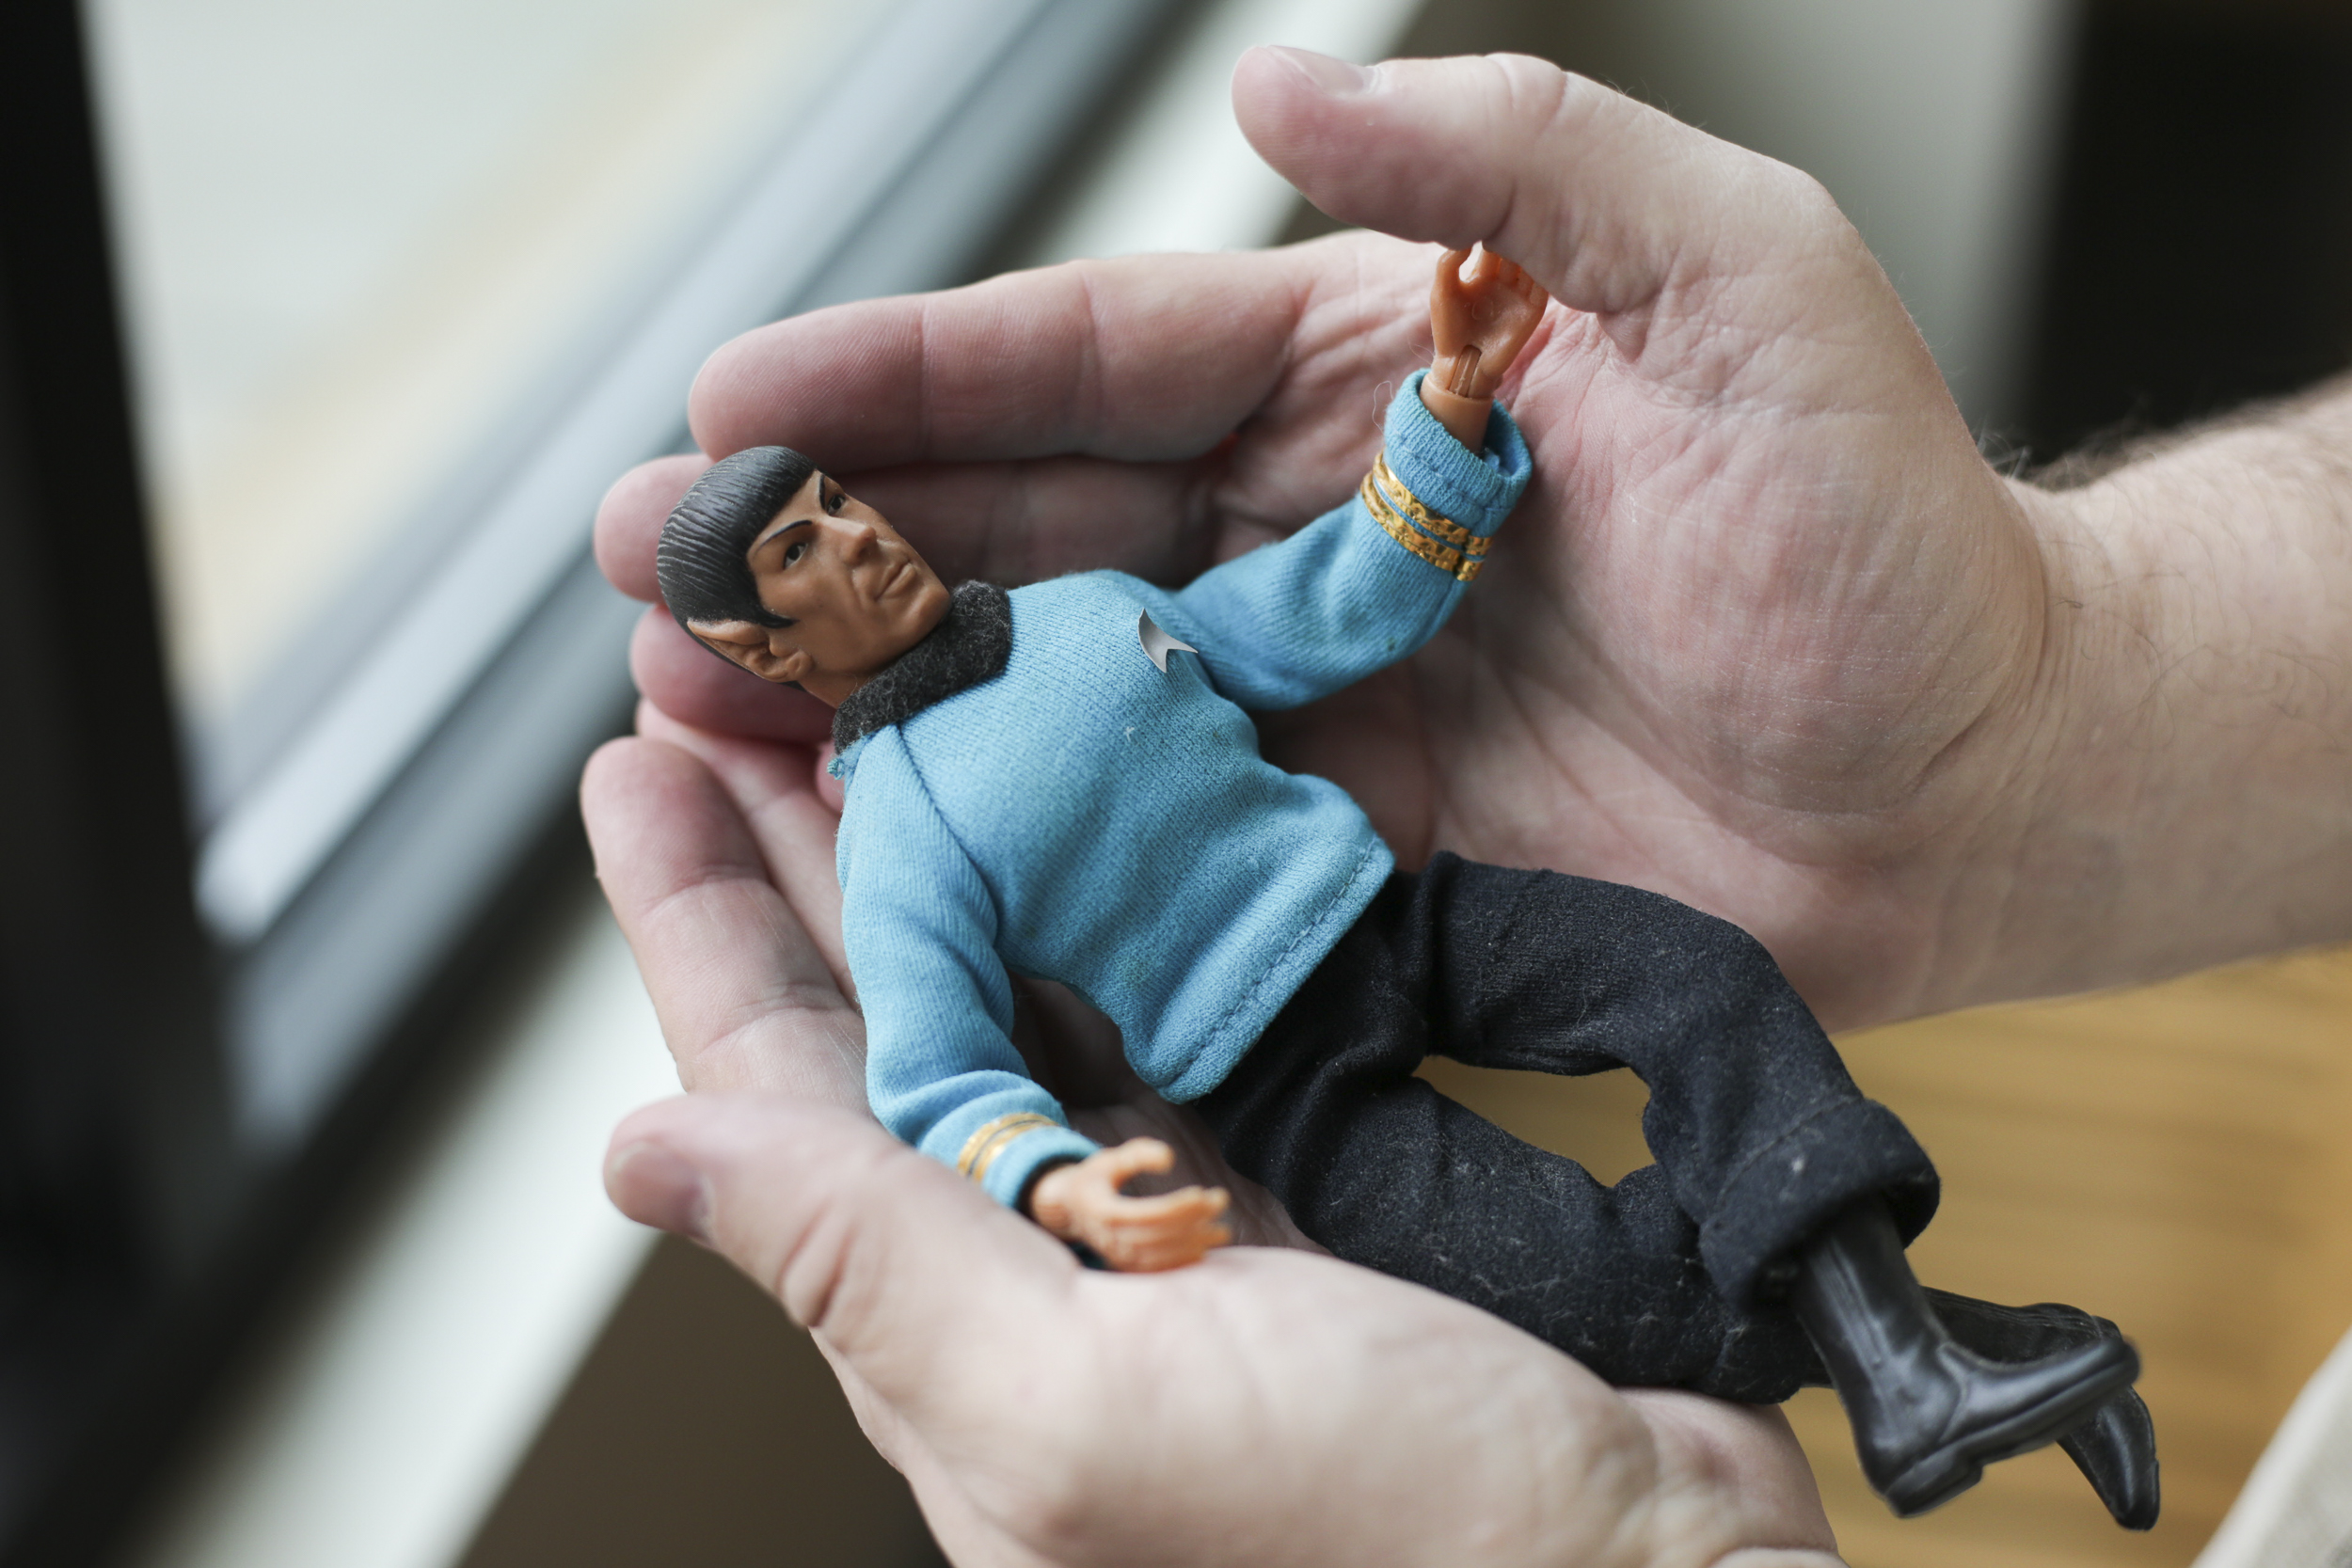 Kevin Pettit, 50, holds a doll he calls Mr. Spock, in his hands at the First Congressional Church in Boulder, Colorado, on April 24, 2018. Spock is important to Pettit because he sat by his bedside all throughout the time Pettit was in coma after his accident.